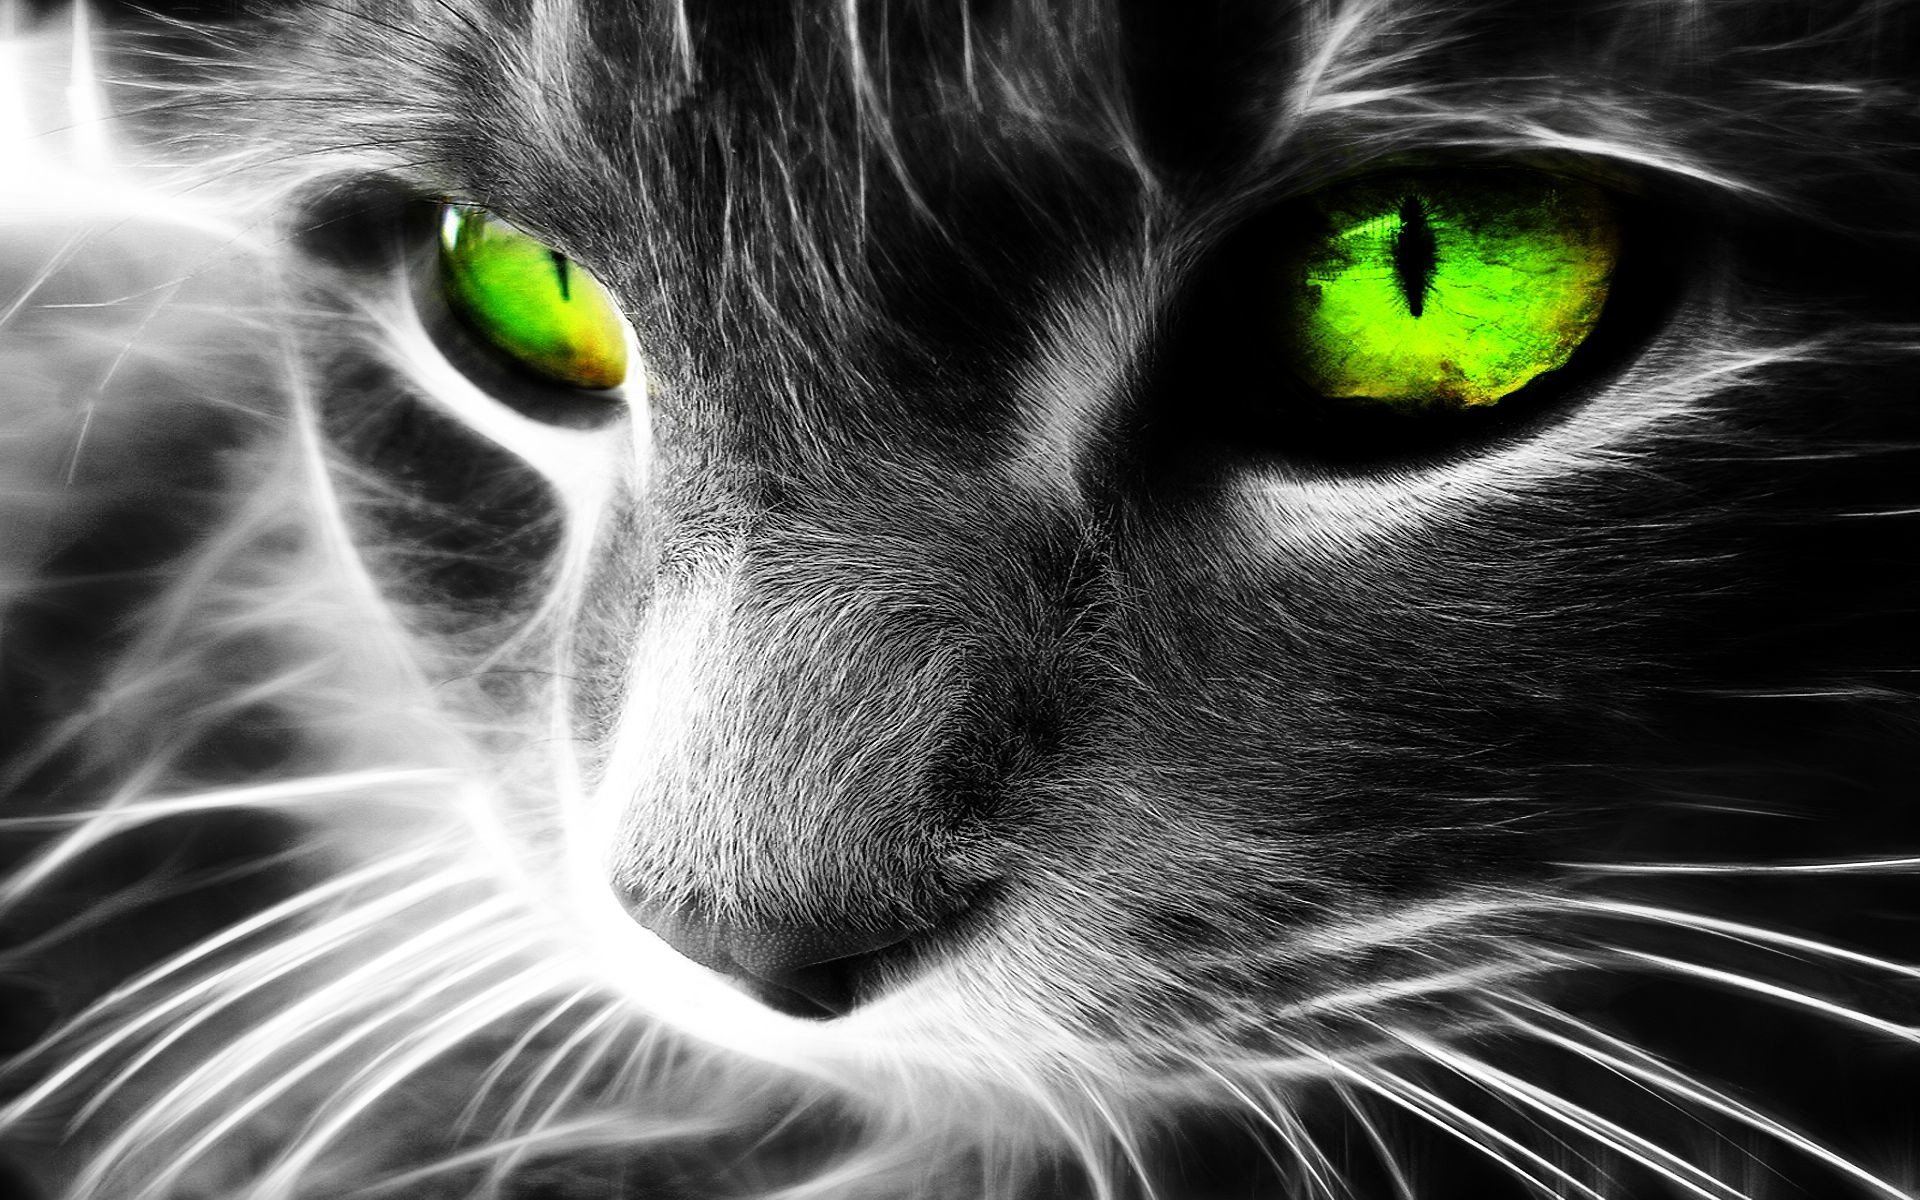 Desktop This HD wallpaper green-cat in animal wallpapers was added to  gallery on August This image have eight hundred and twenty views and eight  likes.